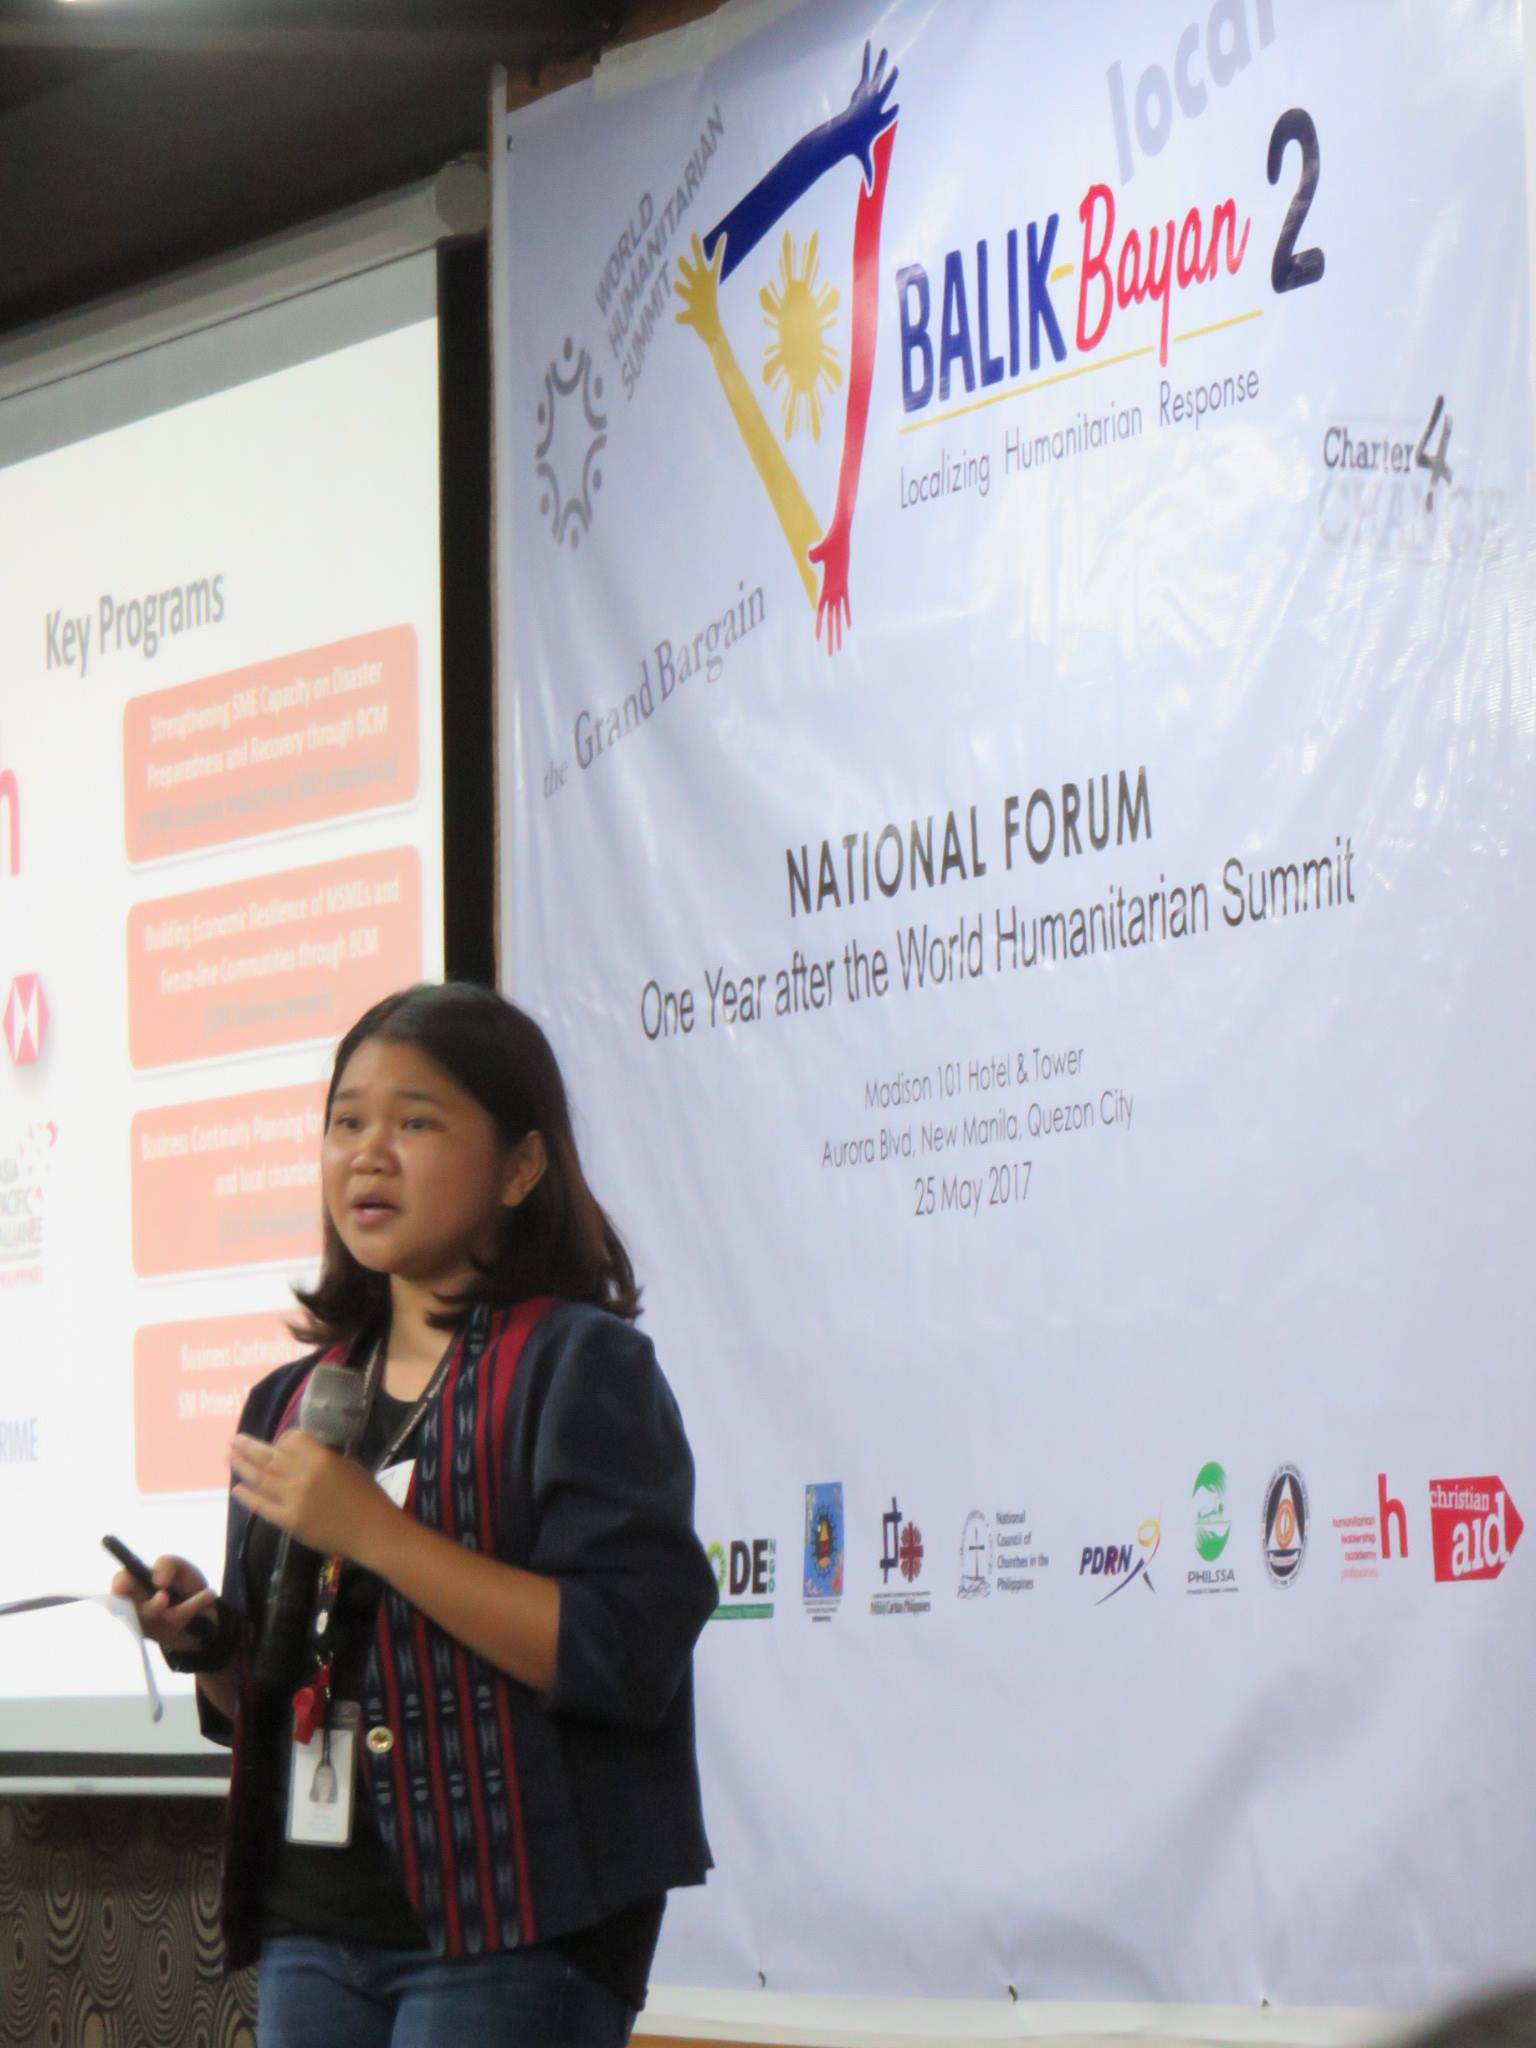 National Forum In The Philippines: A Year After The World Humanitarian Summit